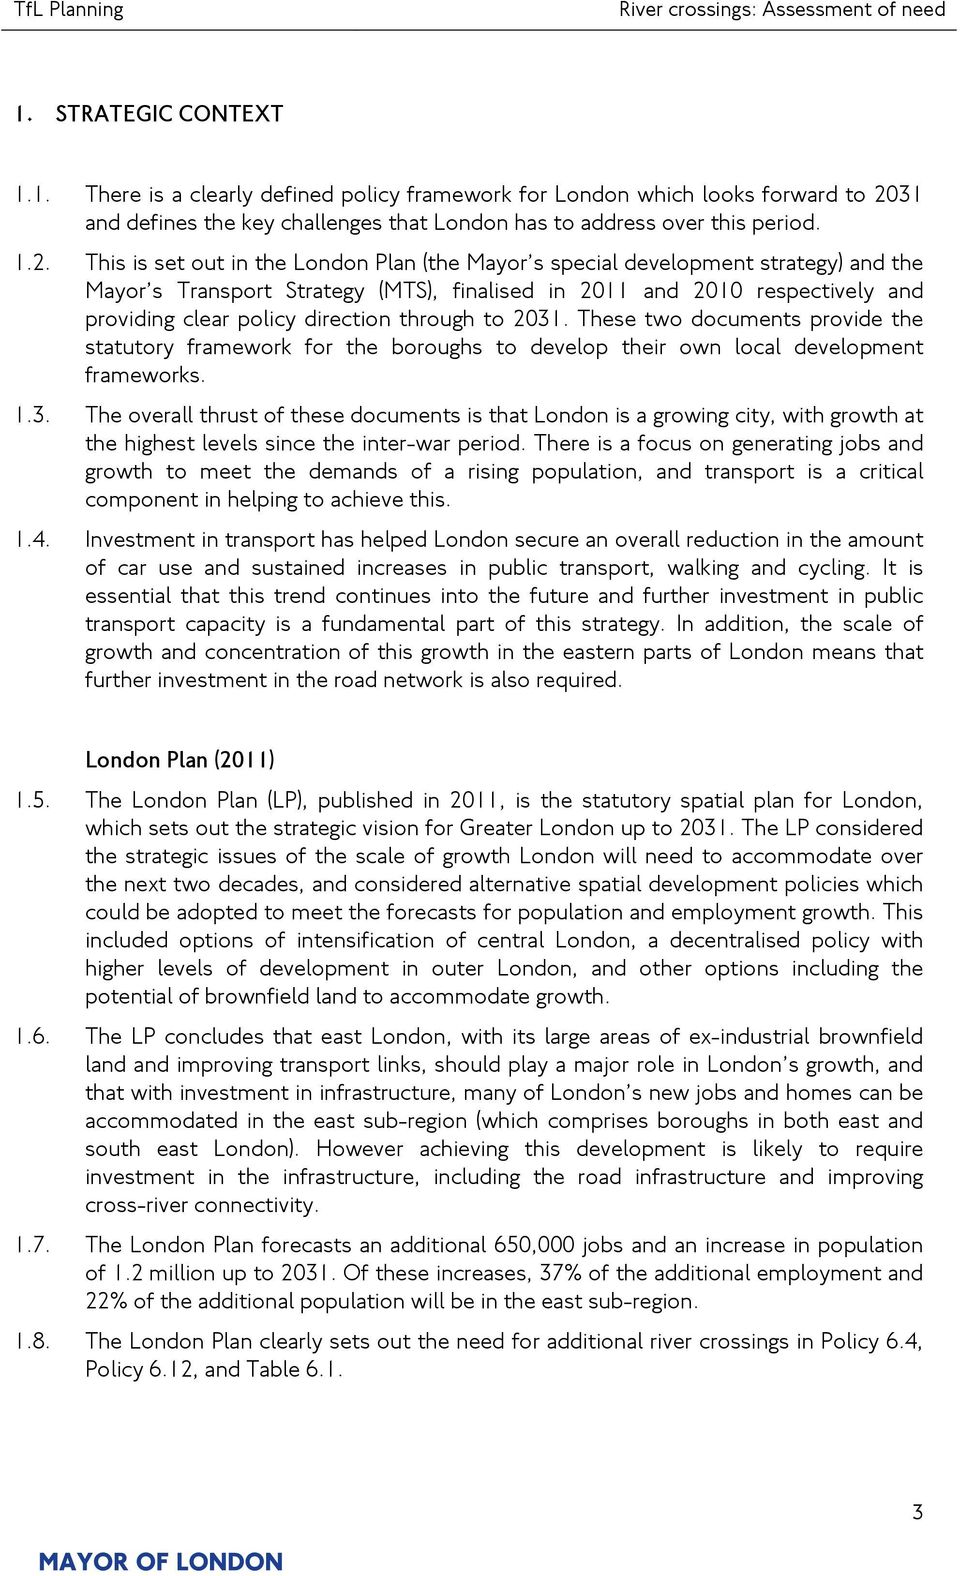 This is set out in the London Plan (the Mayor s special development strategy) and the Mayor s Transport Strategy (MTS), finalised in 2011 and 2010 respectively and providing clear policy direction